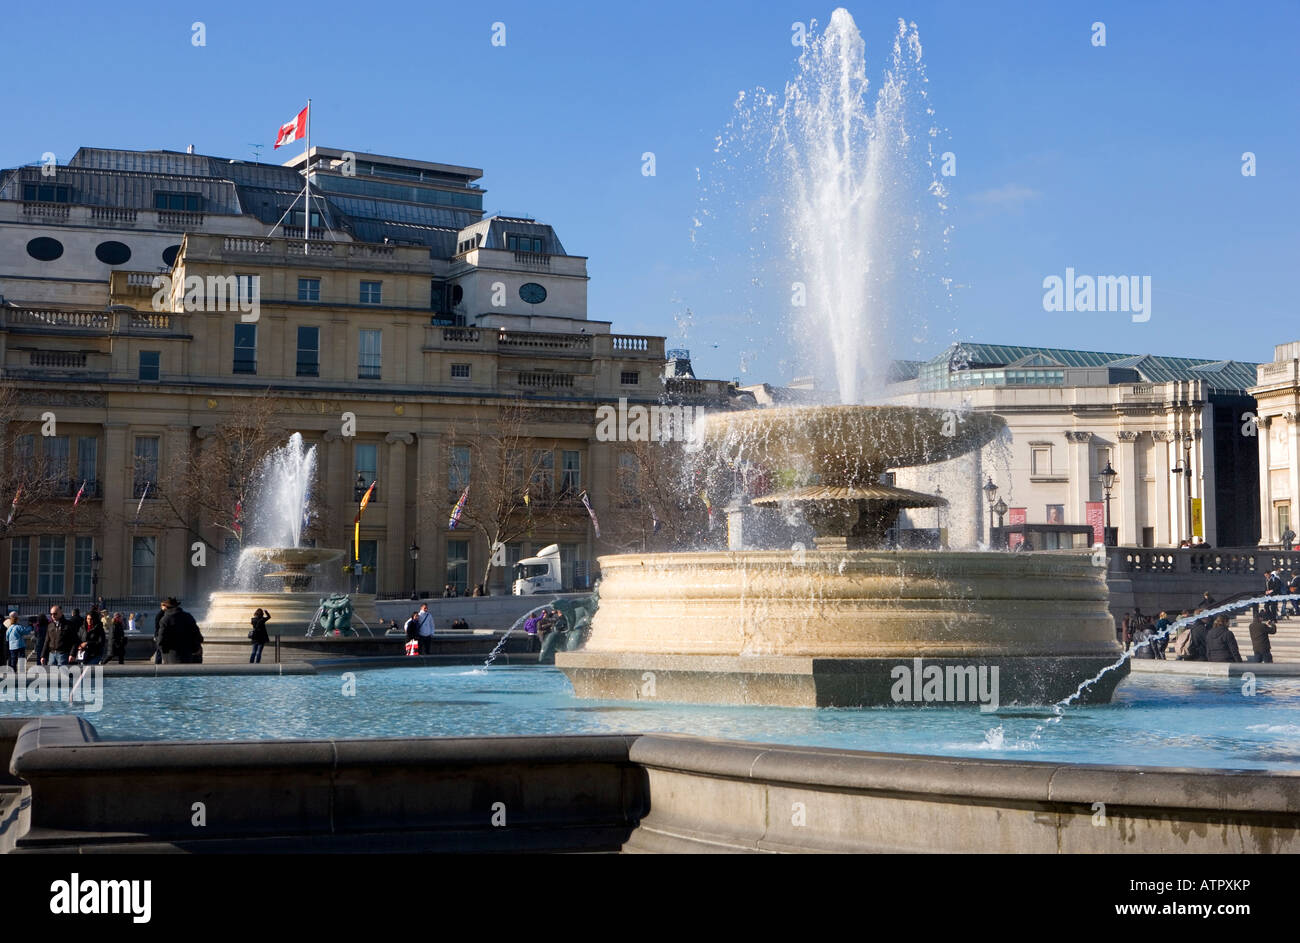 Water fountains canada - Stock Photo Water Fountain Trafalgar Square And Dolphin Statue National Gallery Day Time Spurting Man Canada Canadian Flag Embassy Uk